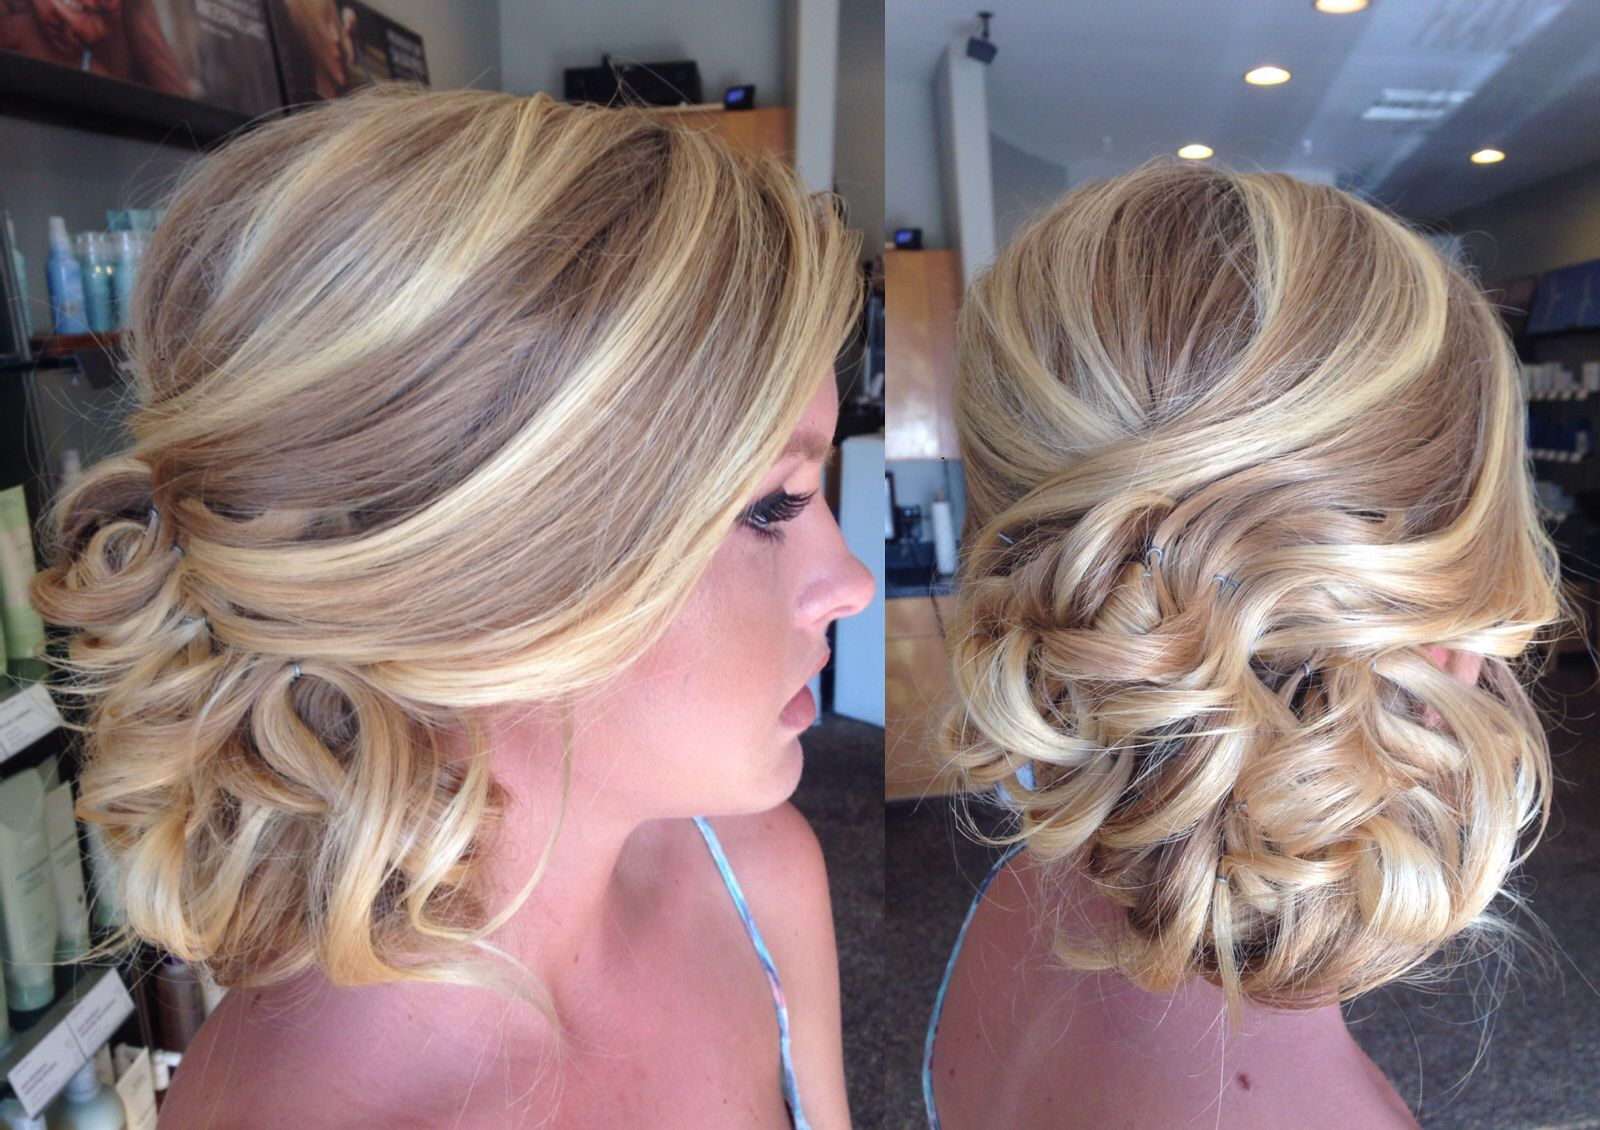 Hair by Emily Southworth @emmiry -Frangipani hair studio #updo #promupdo #bridal #bride #prom #hair